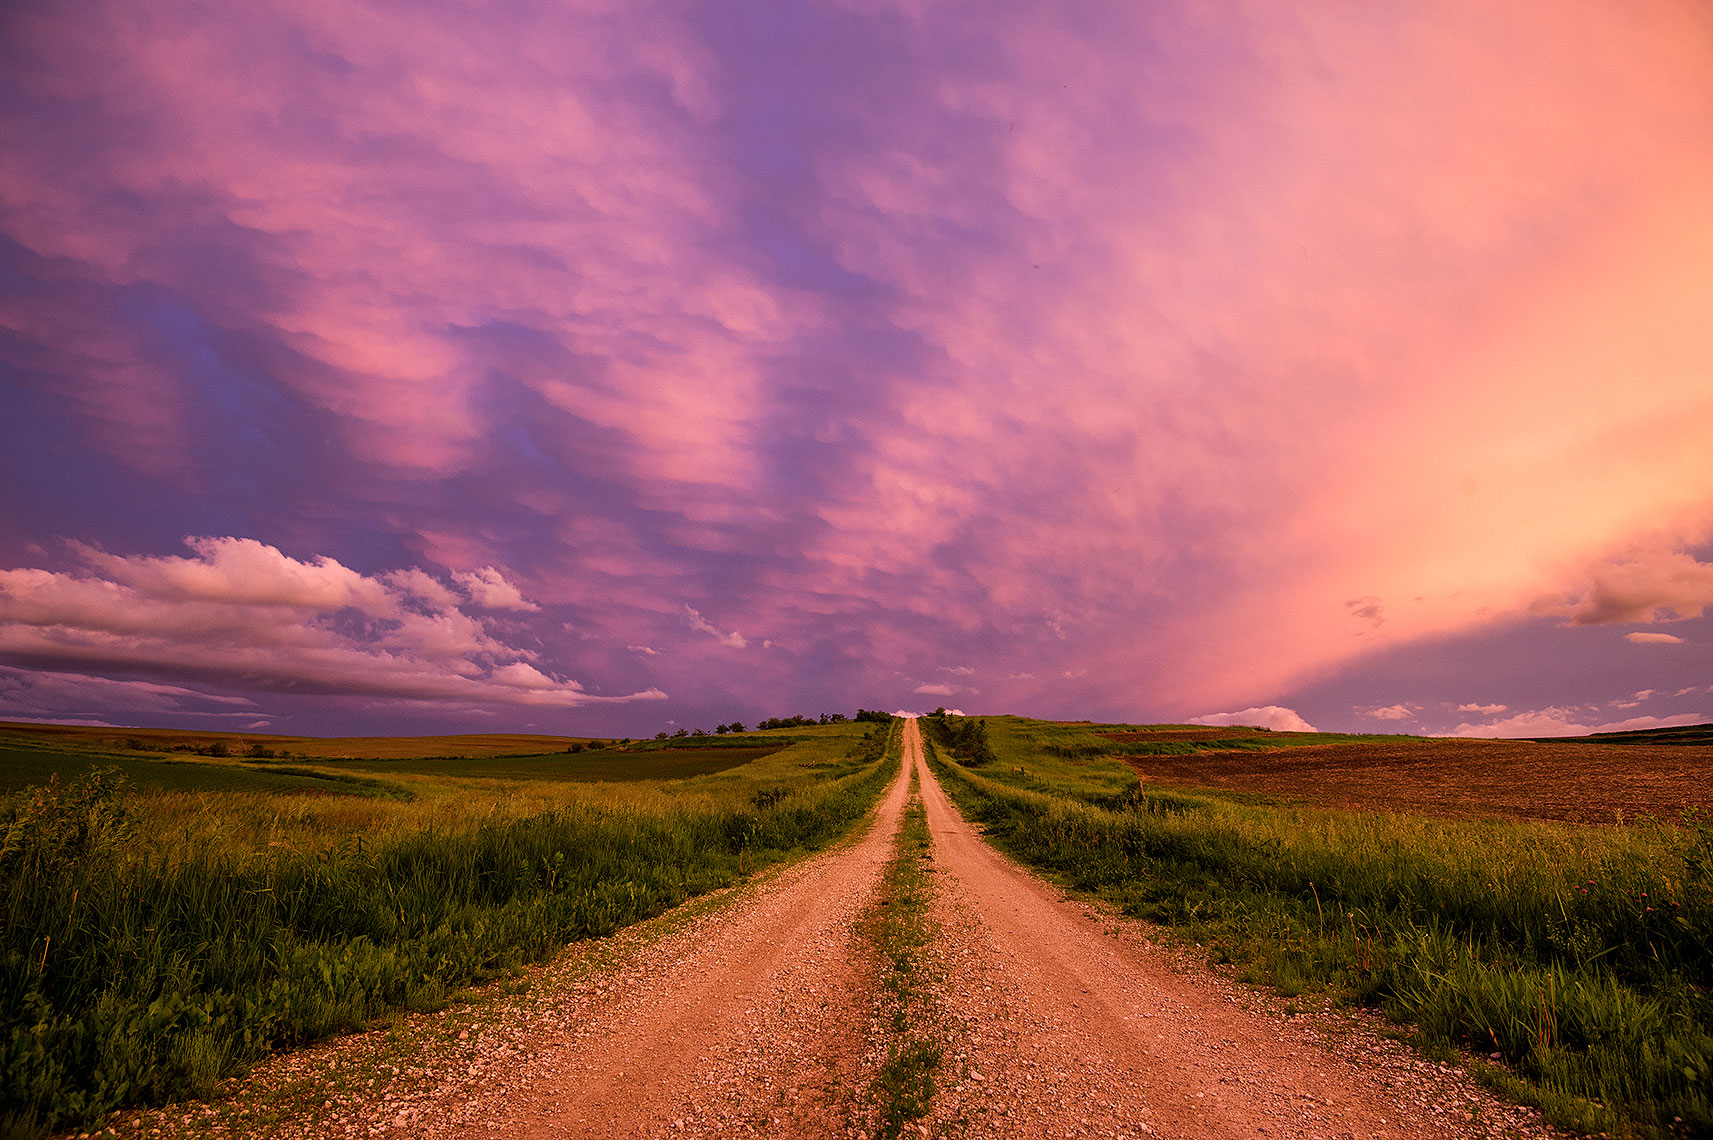 Colorful Sunset and Country Road